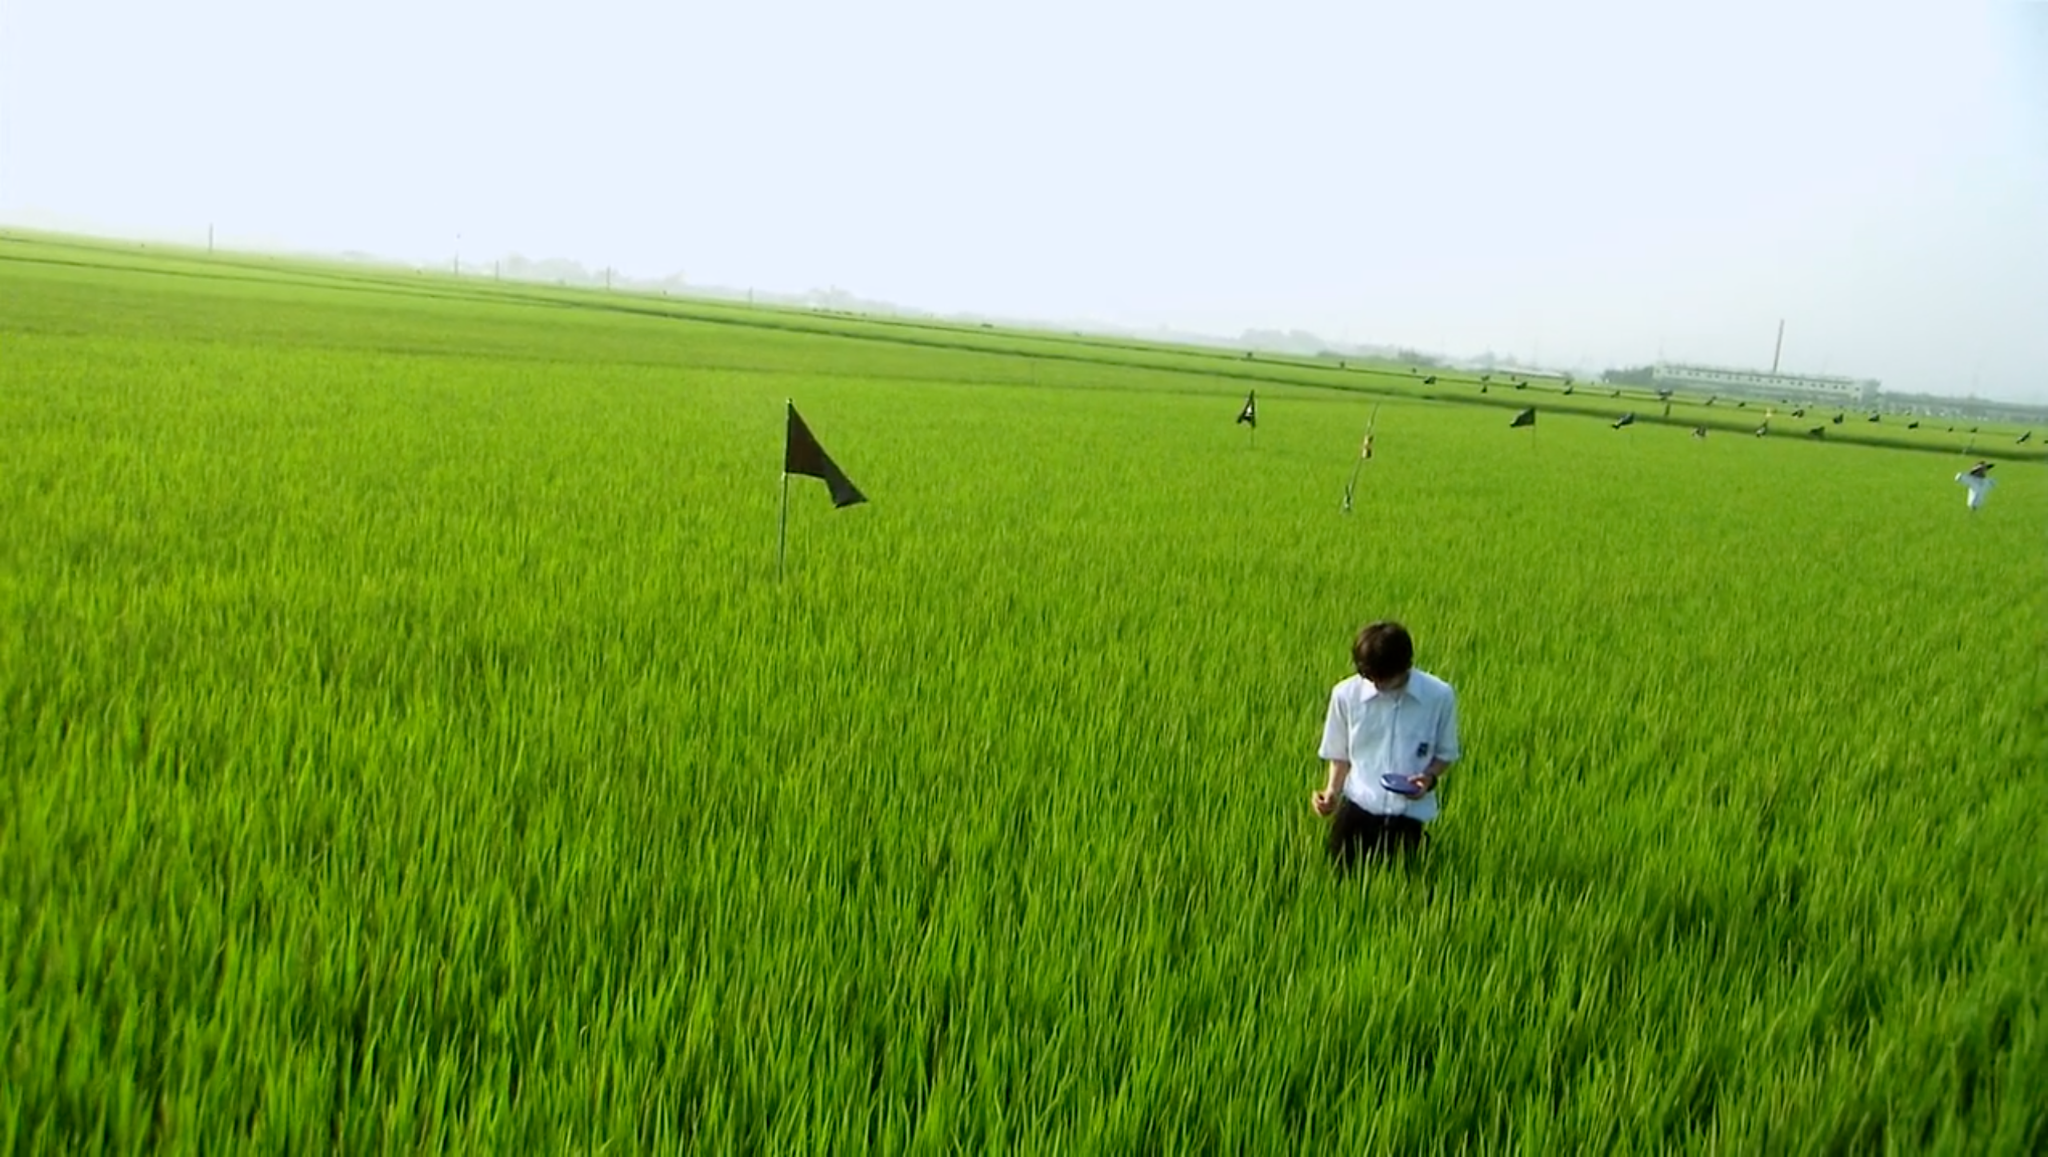 Yūichi, in his school uniform of white shirt and black pants, stands in a vast green rice field with a CD player in one hand.